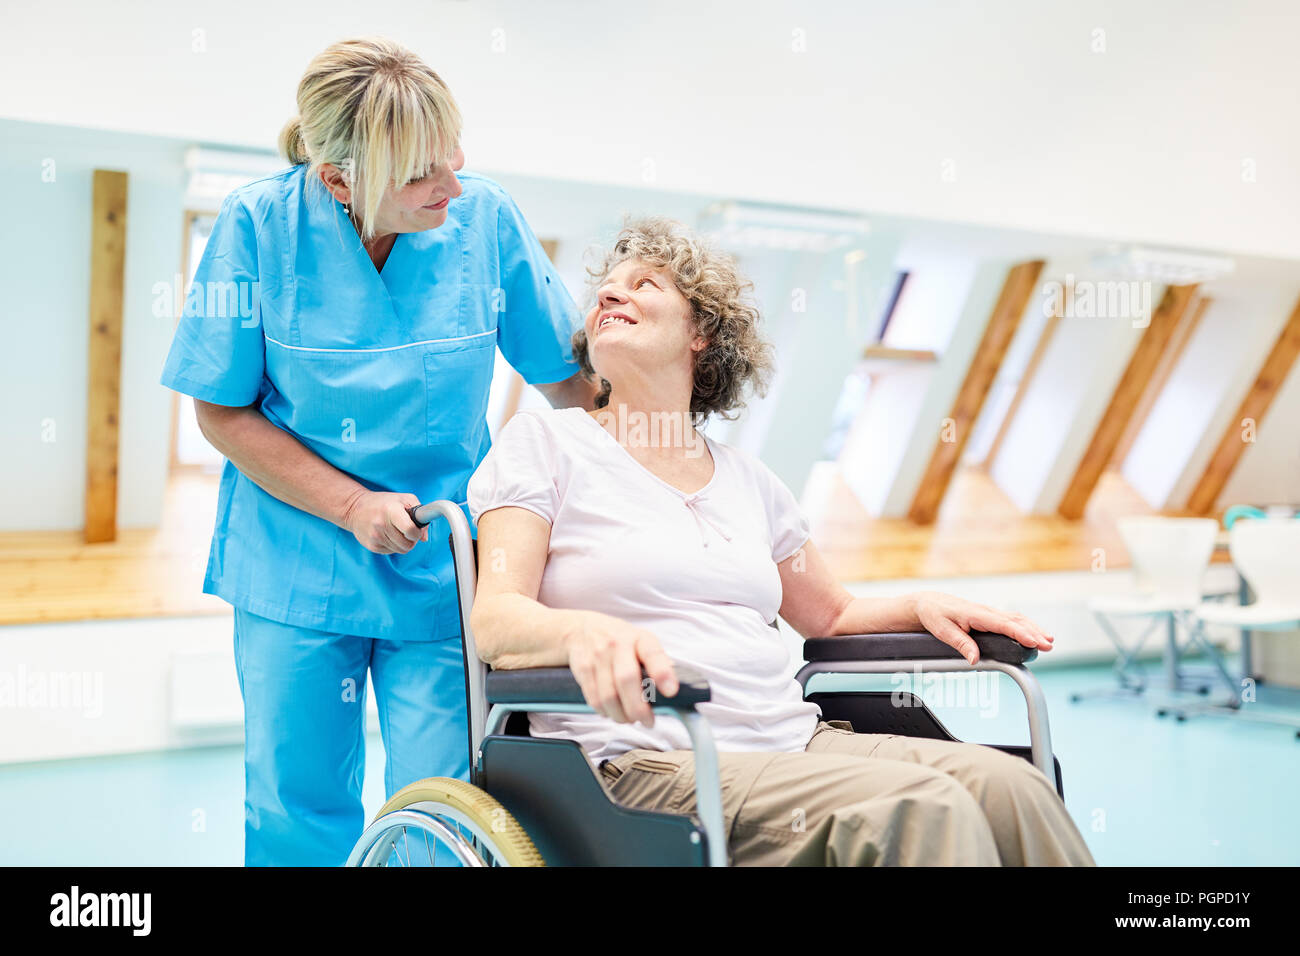 Caring caregiver takes care of a senior woman in a wheelchair at rehab - Stock Image